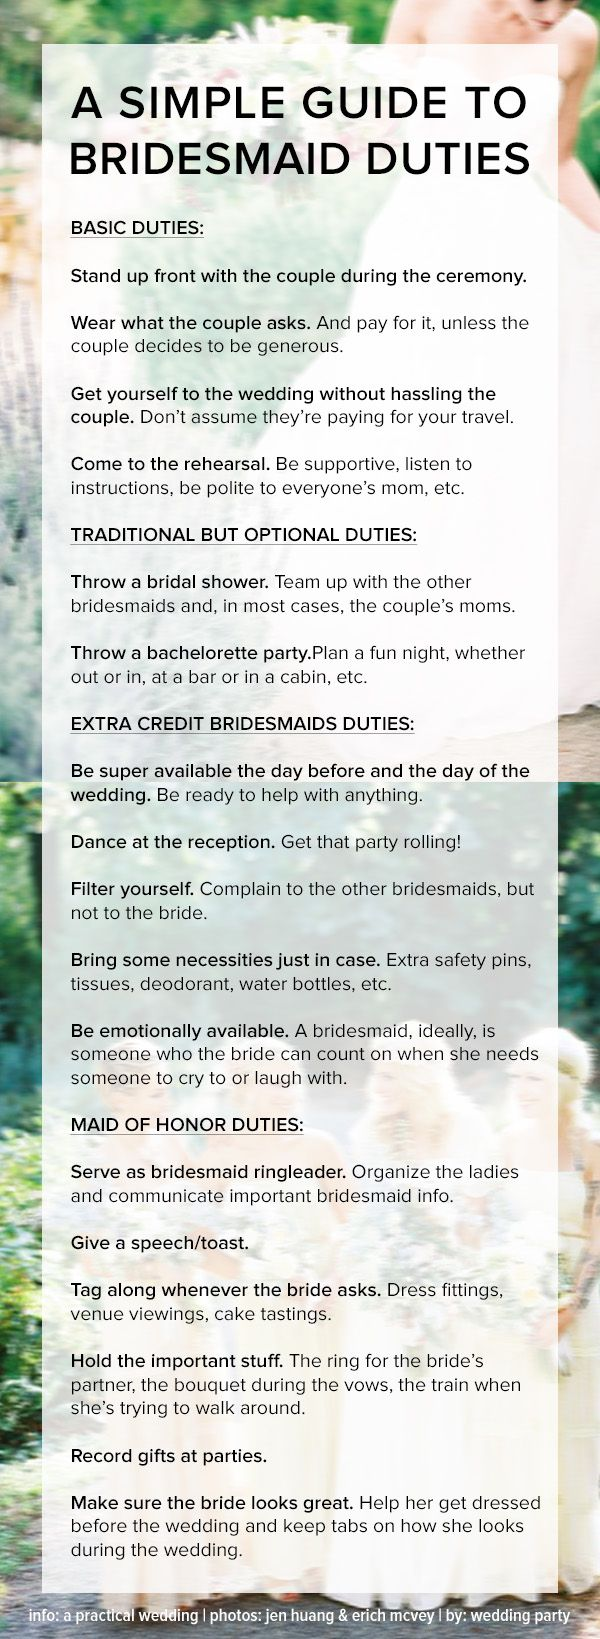 A simple guide to bridesmaids duties and etiquette bridesmaid a simple guide to bridesmaids duties and etiquette bridesmaid duties wedding and weddings sciox Images